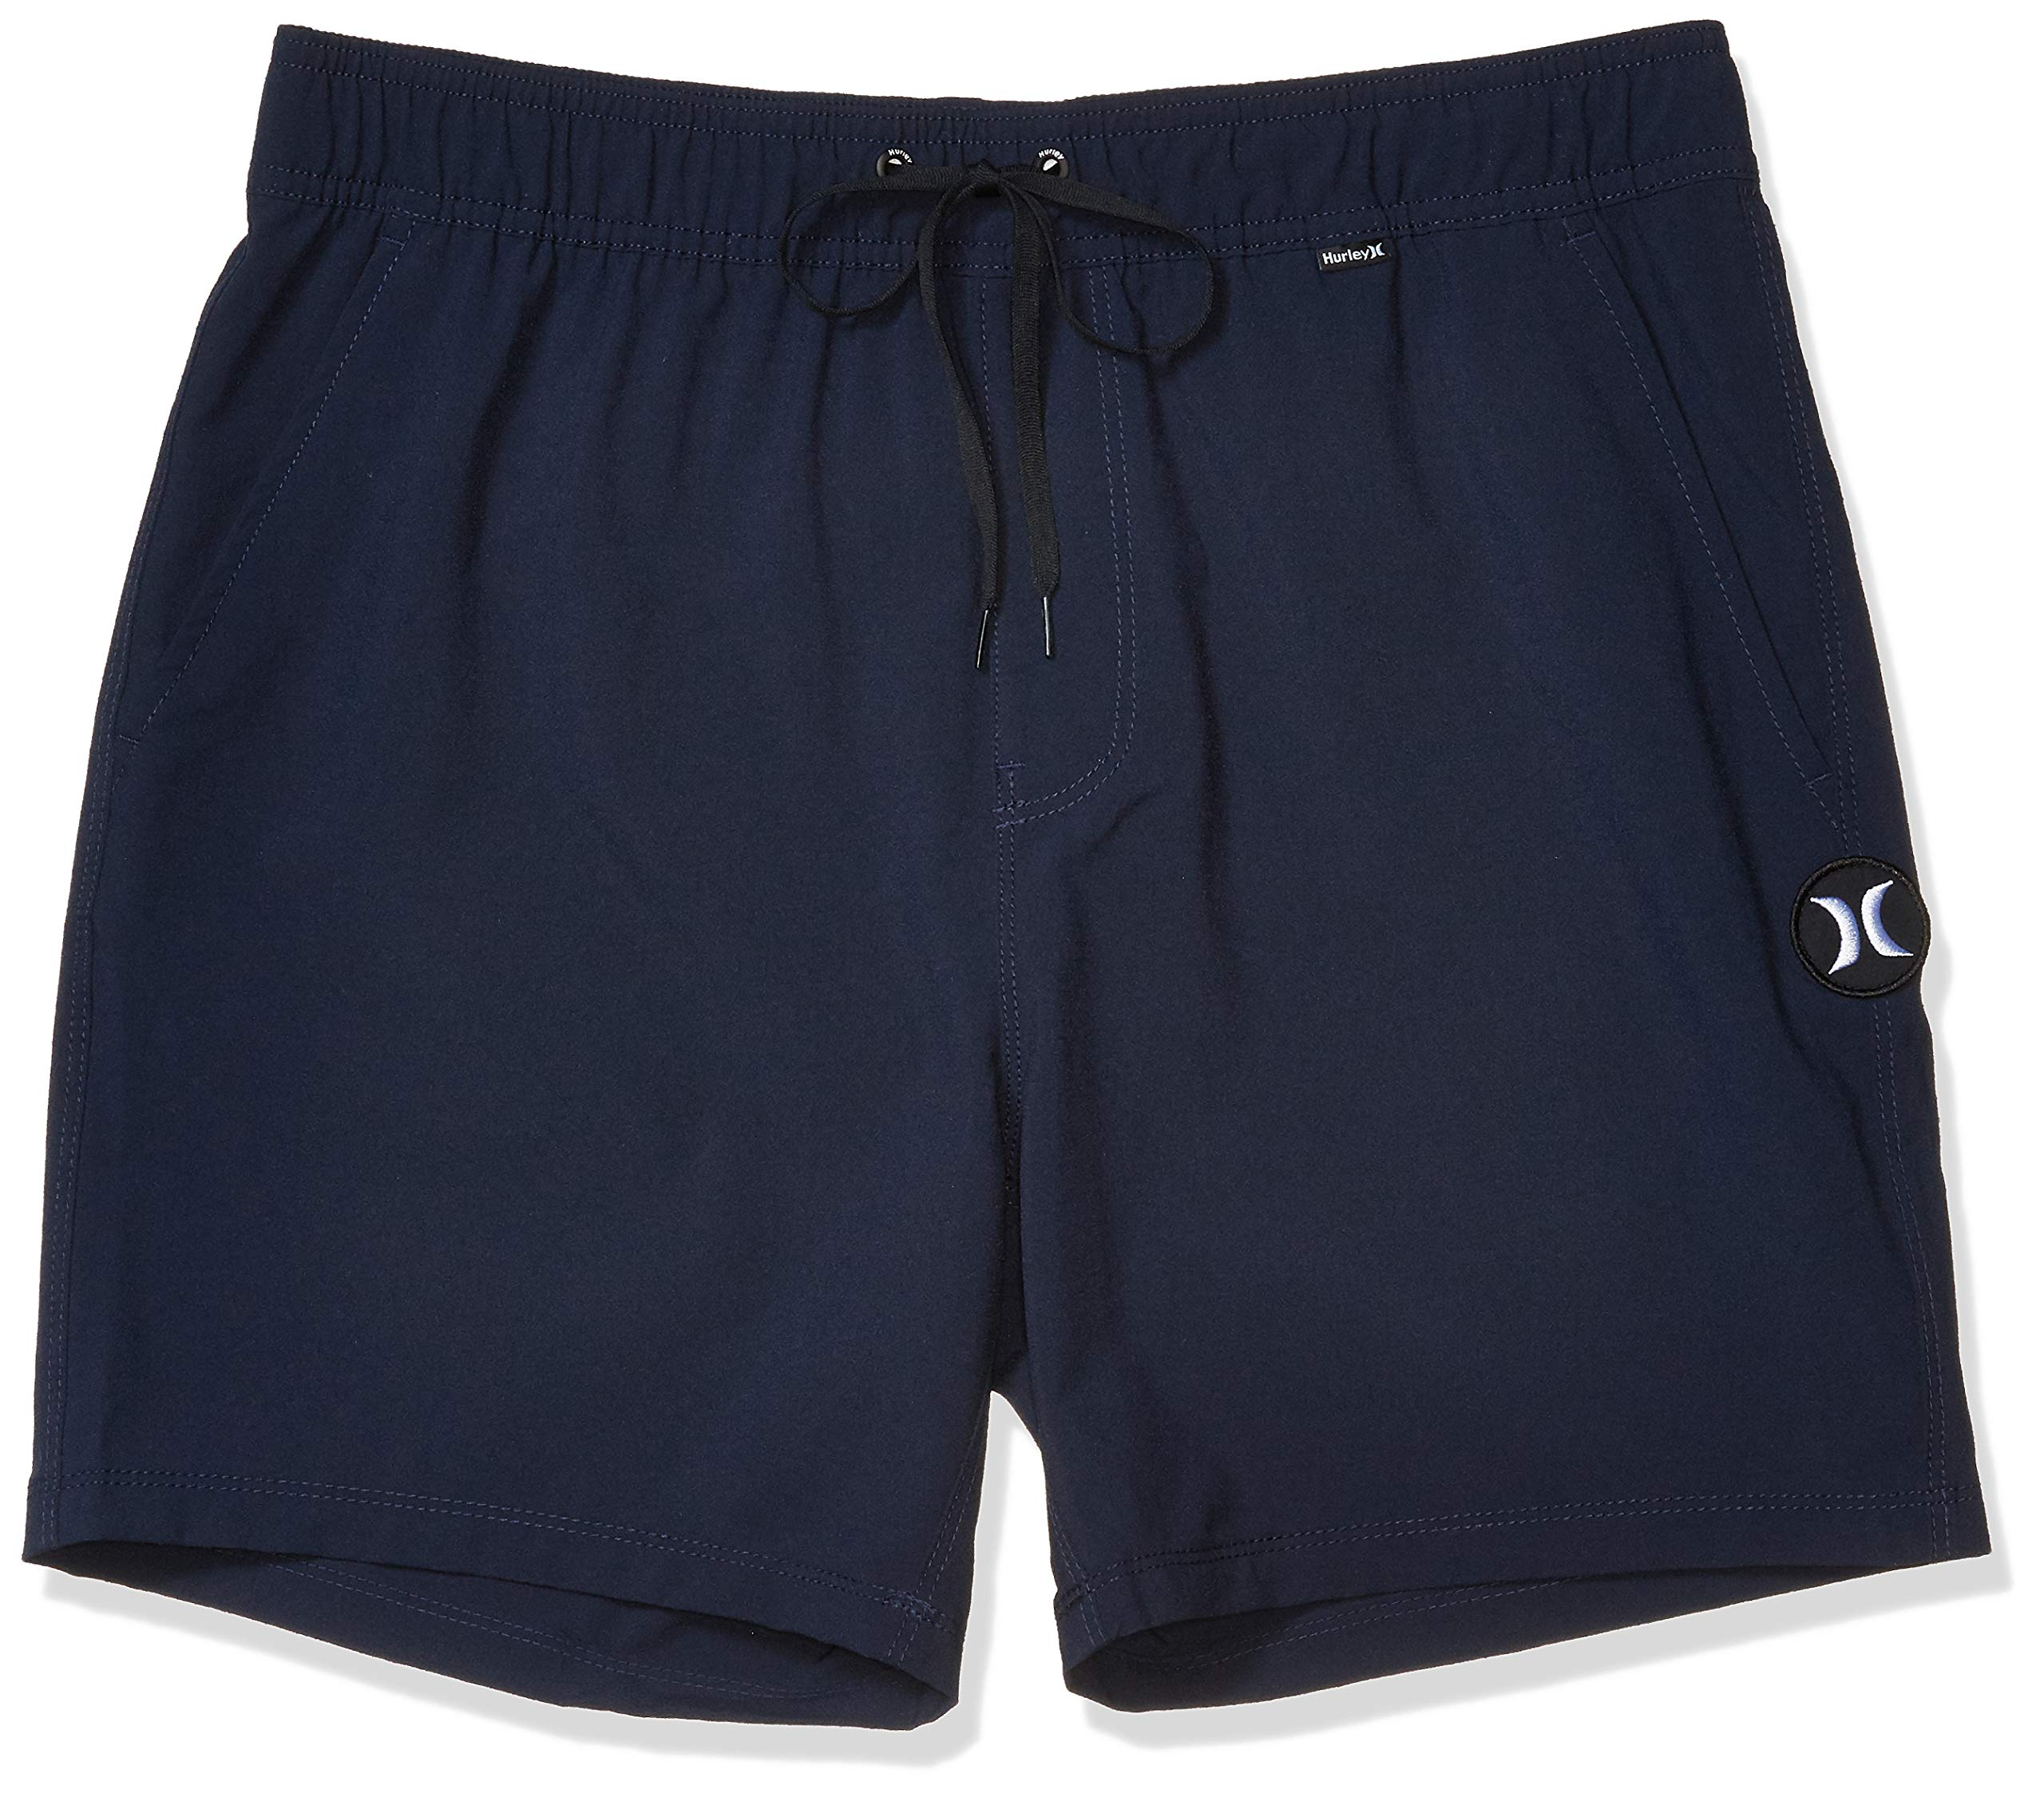 Hurley Men's One and Only Board Shorts